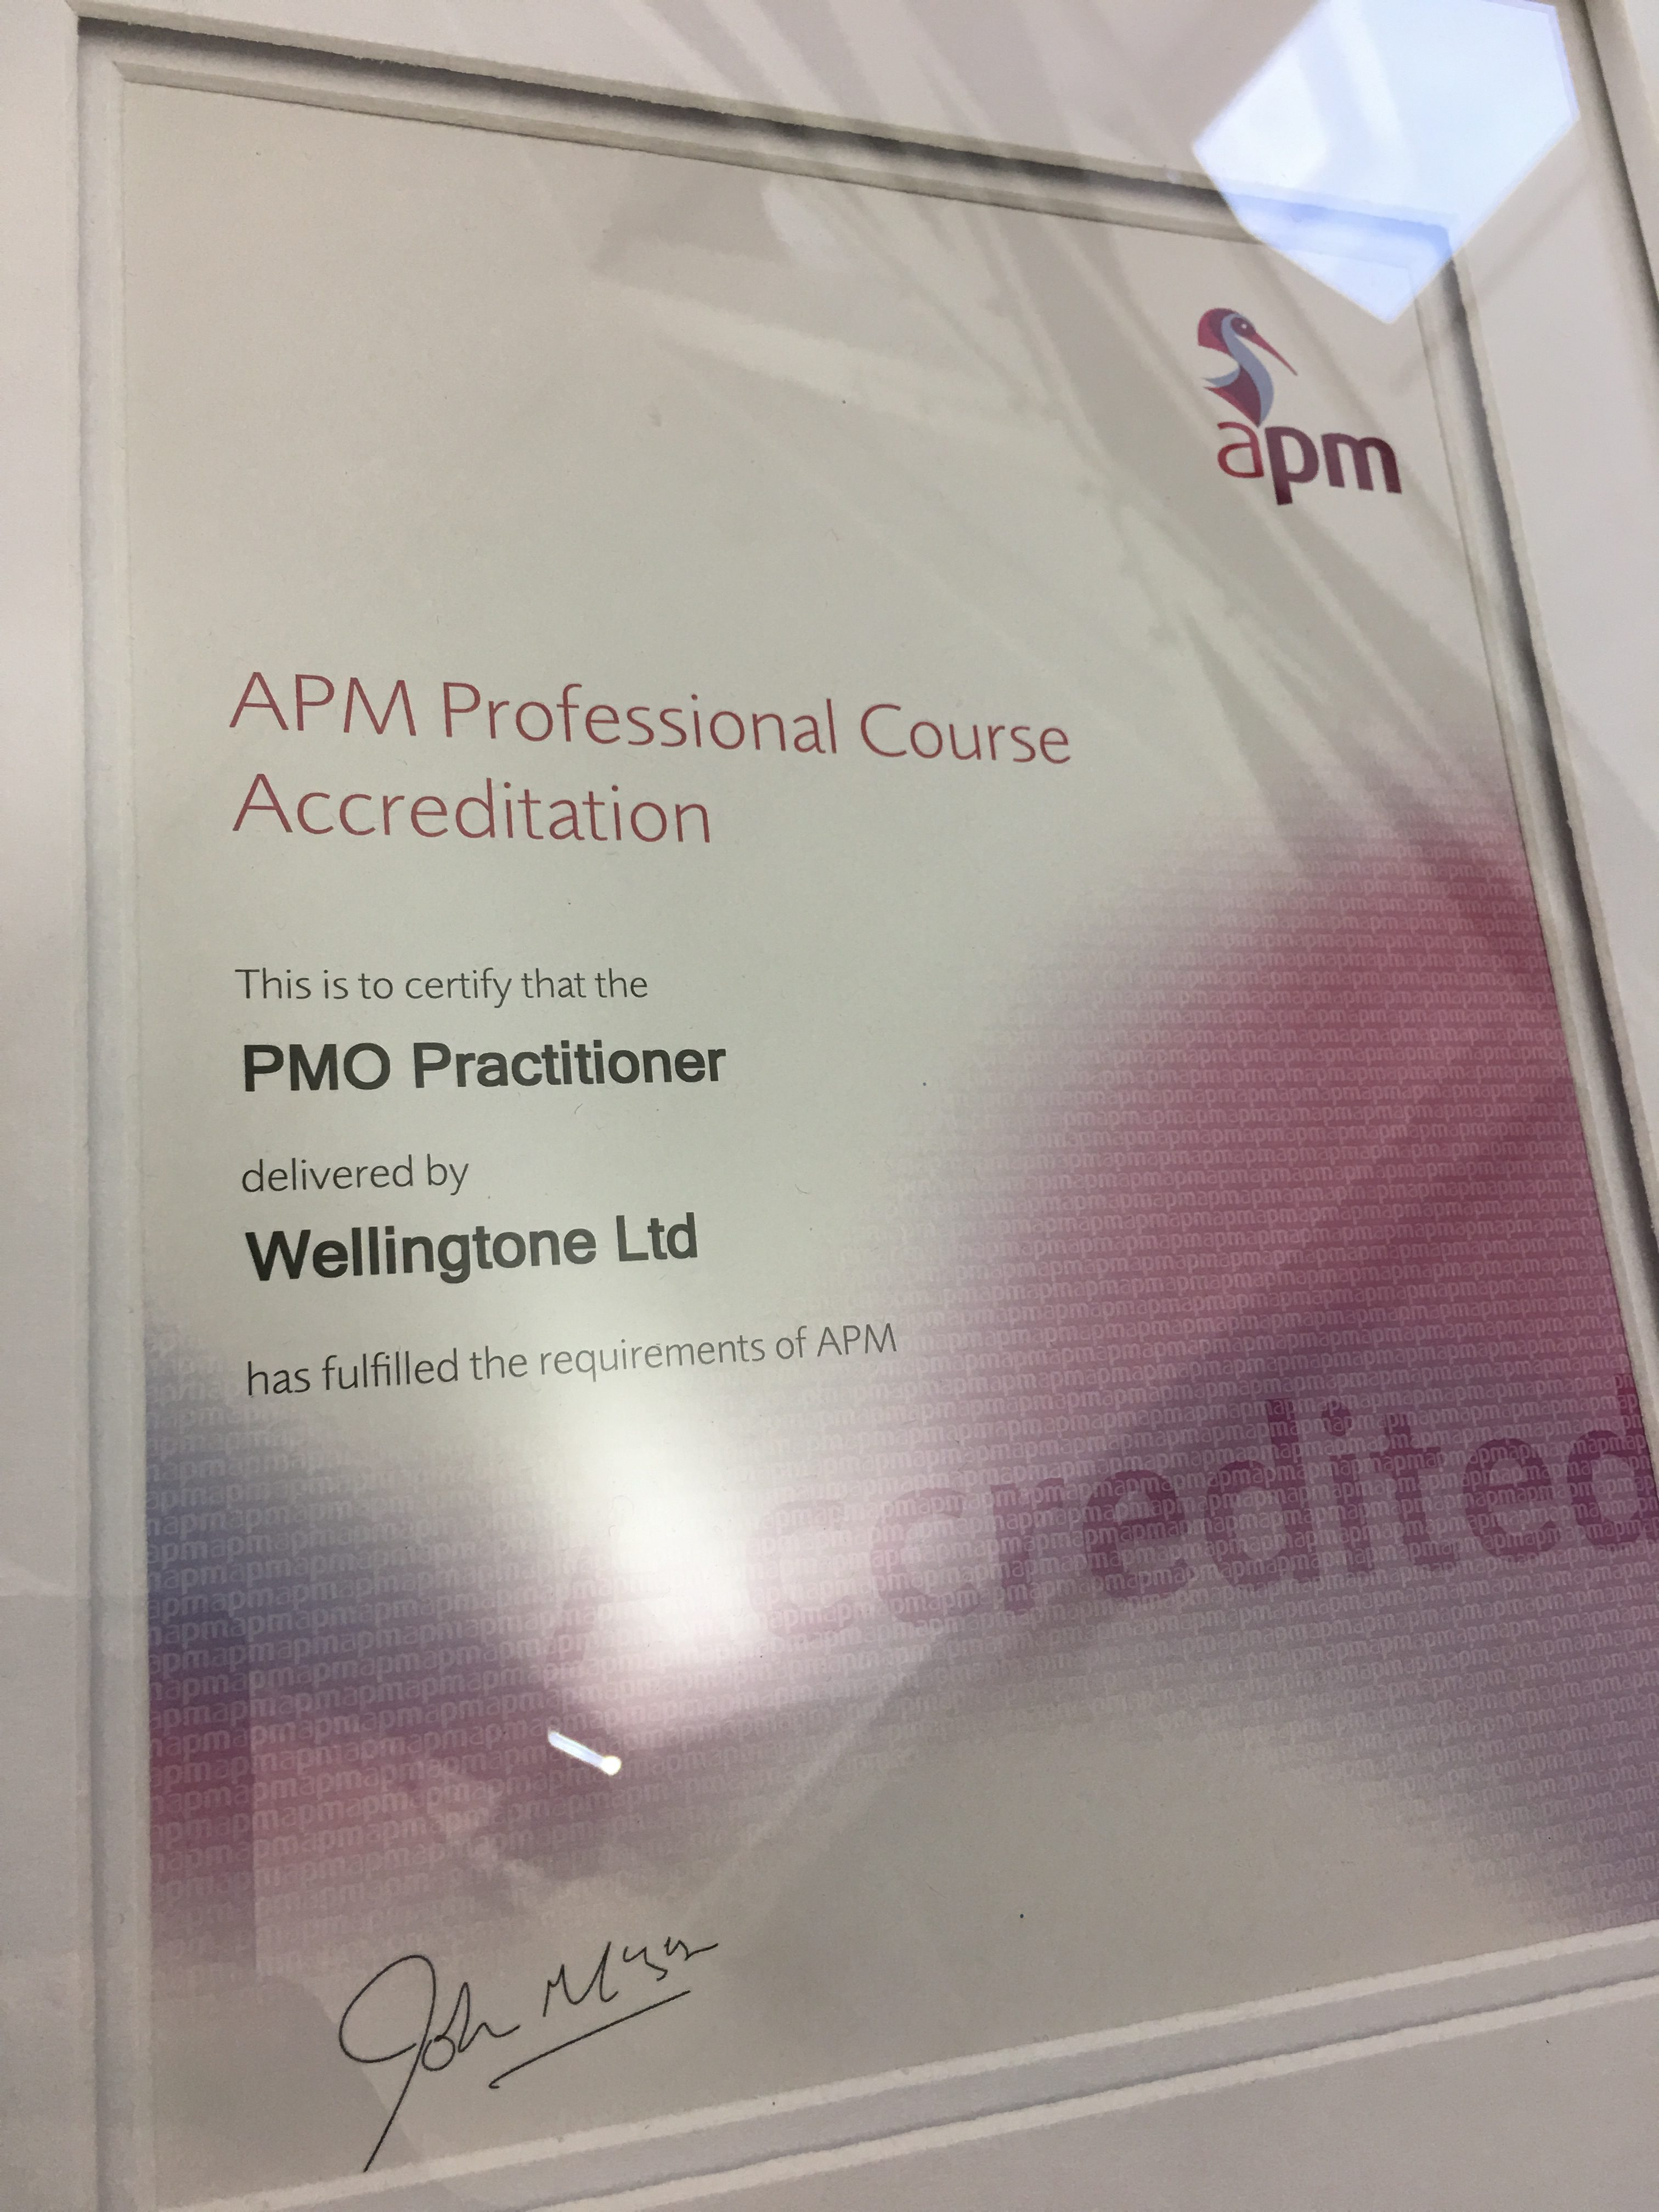 APM Accredited PMO Practitioner